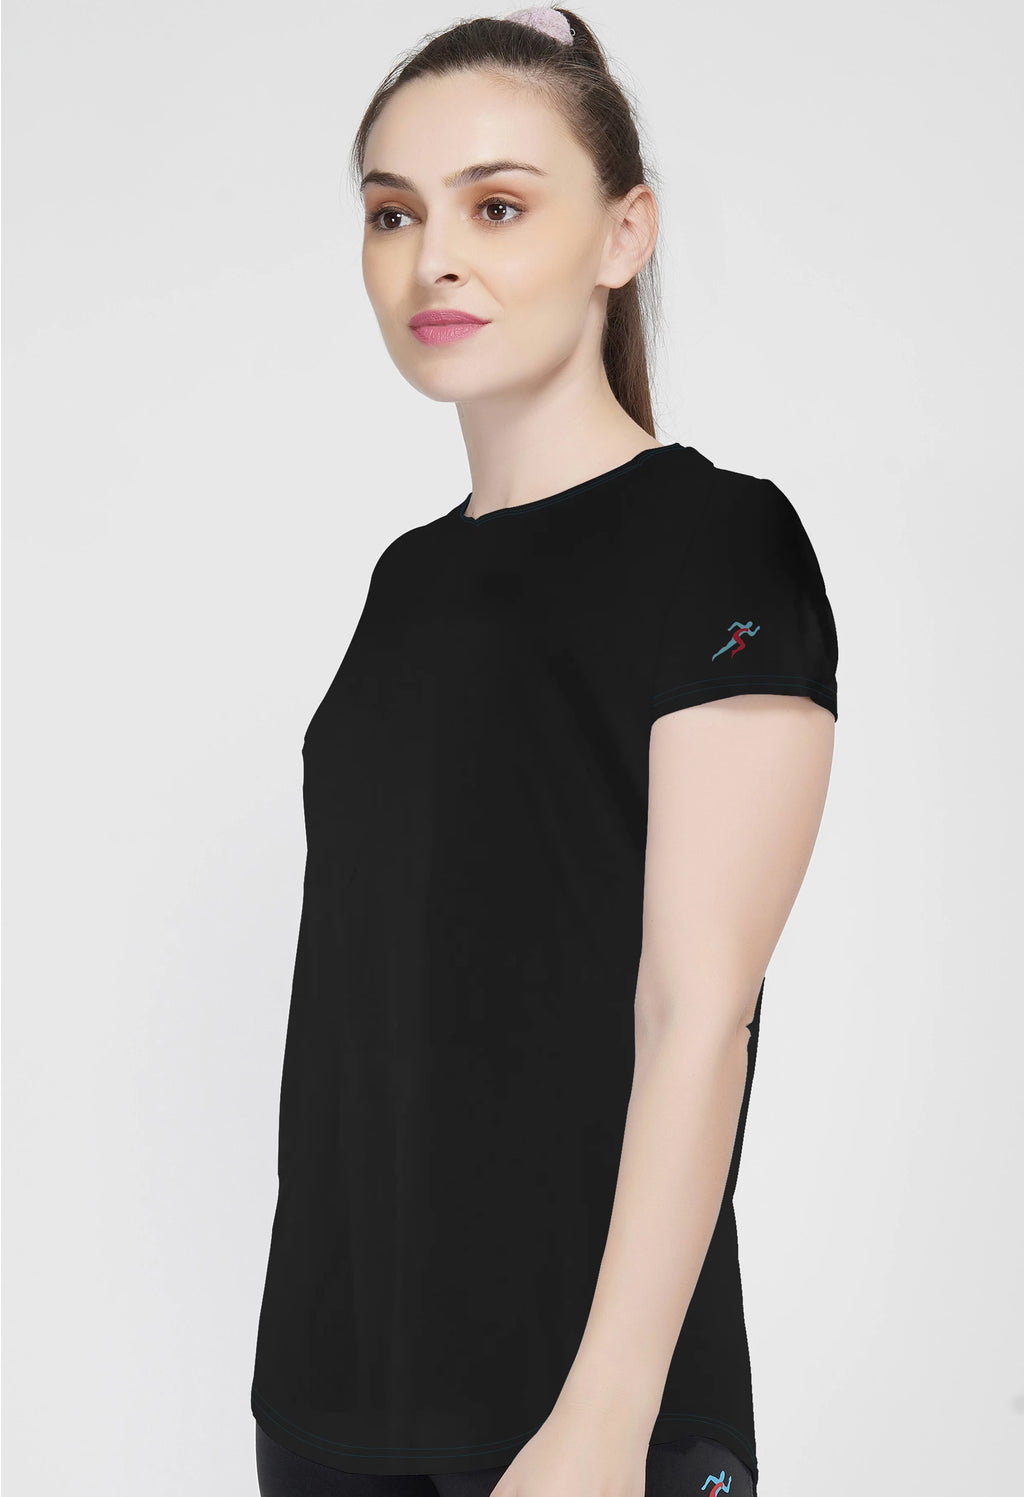 Shape Long Tail Gym T-Shirt For Women - Black